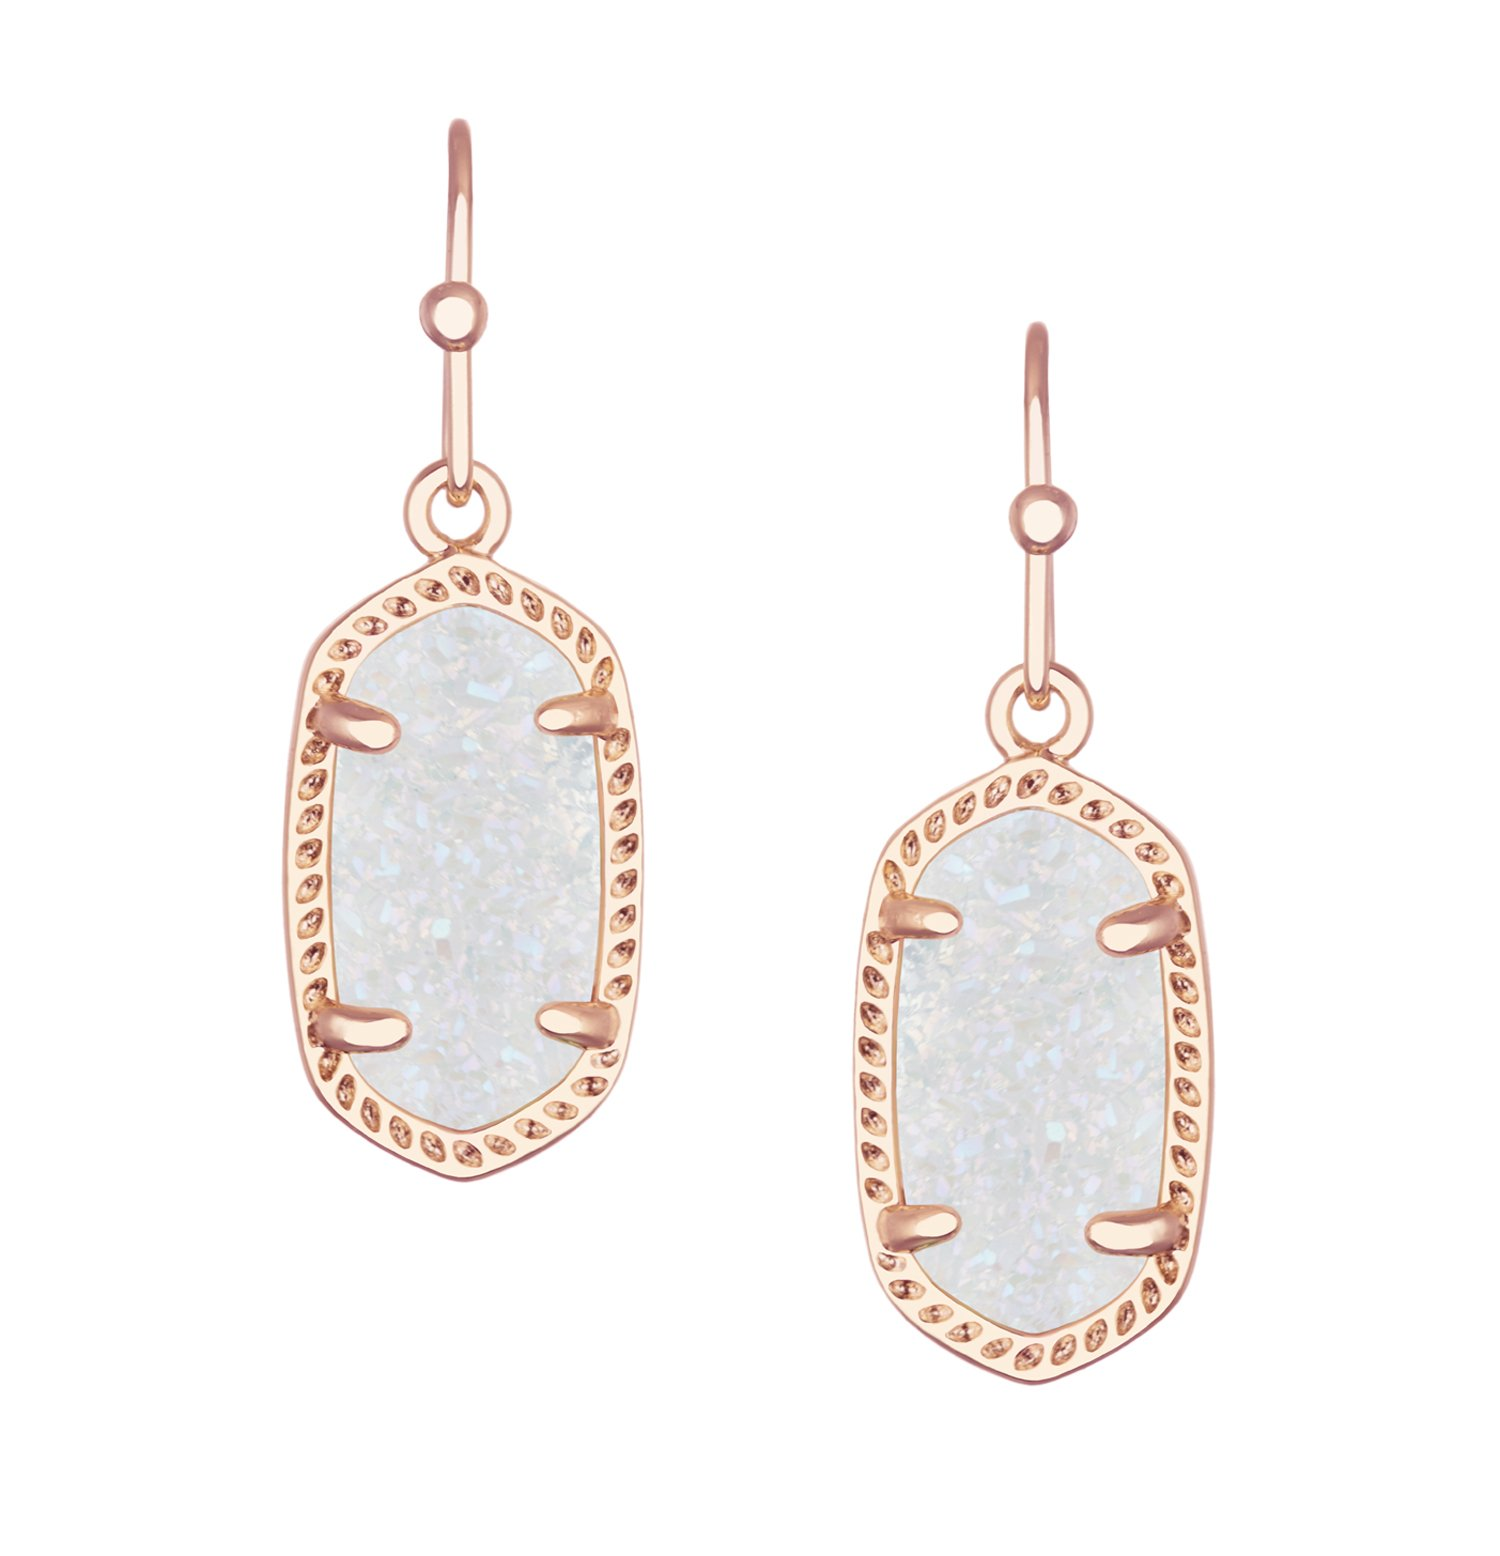 Kendra Scott Signature Dainty Lee Earrings in Rose Gold Plated and Iridescent Drusy